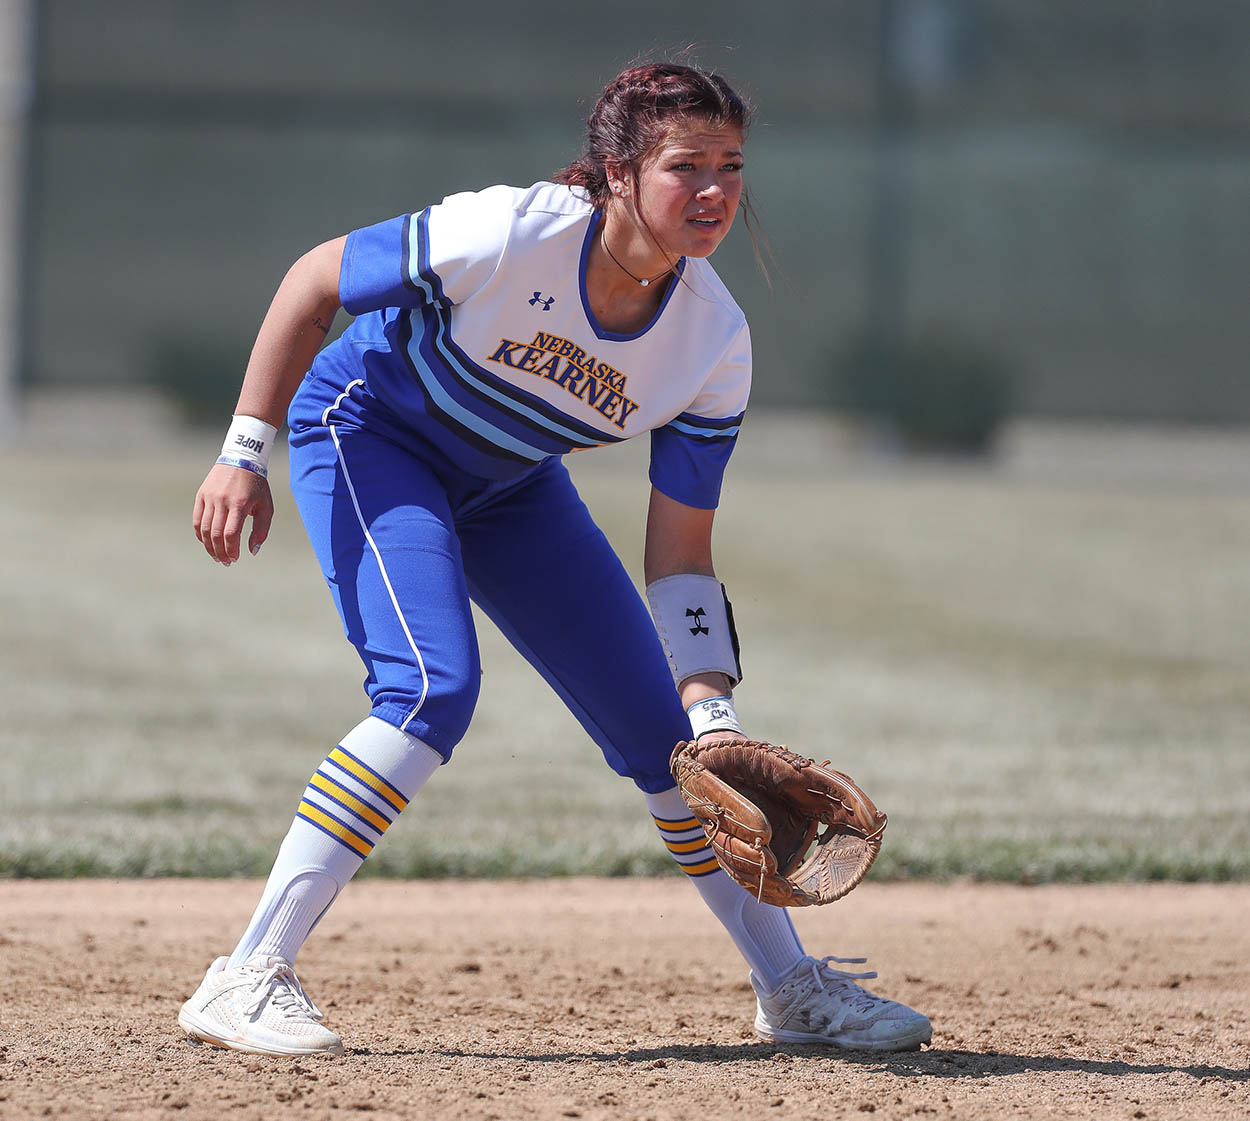 """Kearney High School graduate Kaitie Johnson calls her decision to attend UNK and play softball for the Lopers a """"no-brainer."""" """"I've always loved playing for Kearney,"""" the 21-year-old said. """"It's a different type of atmosphere when you're from here, everyone knows you and they want you to succeed."""""""